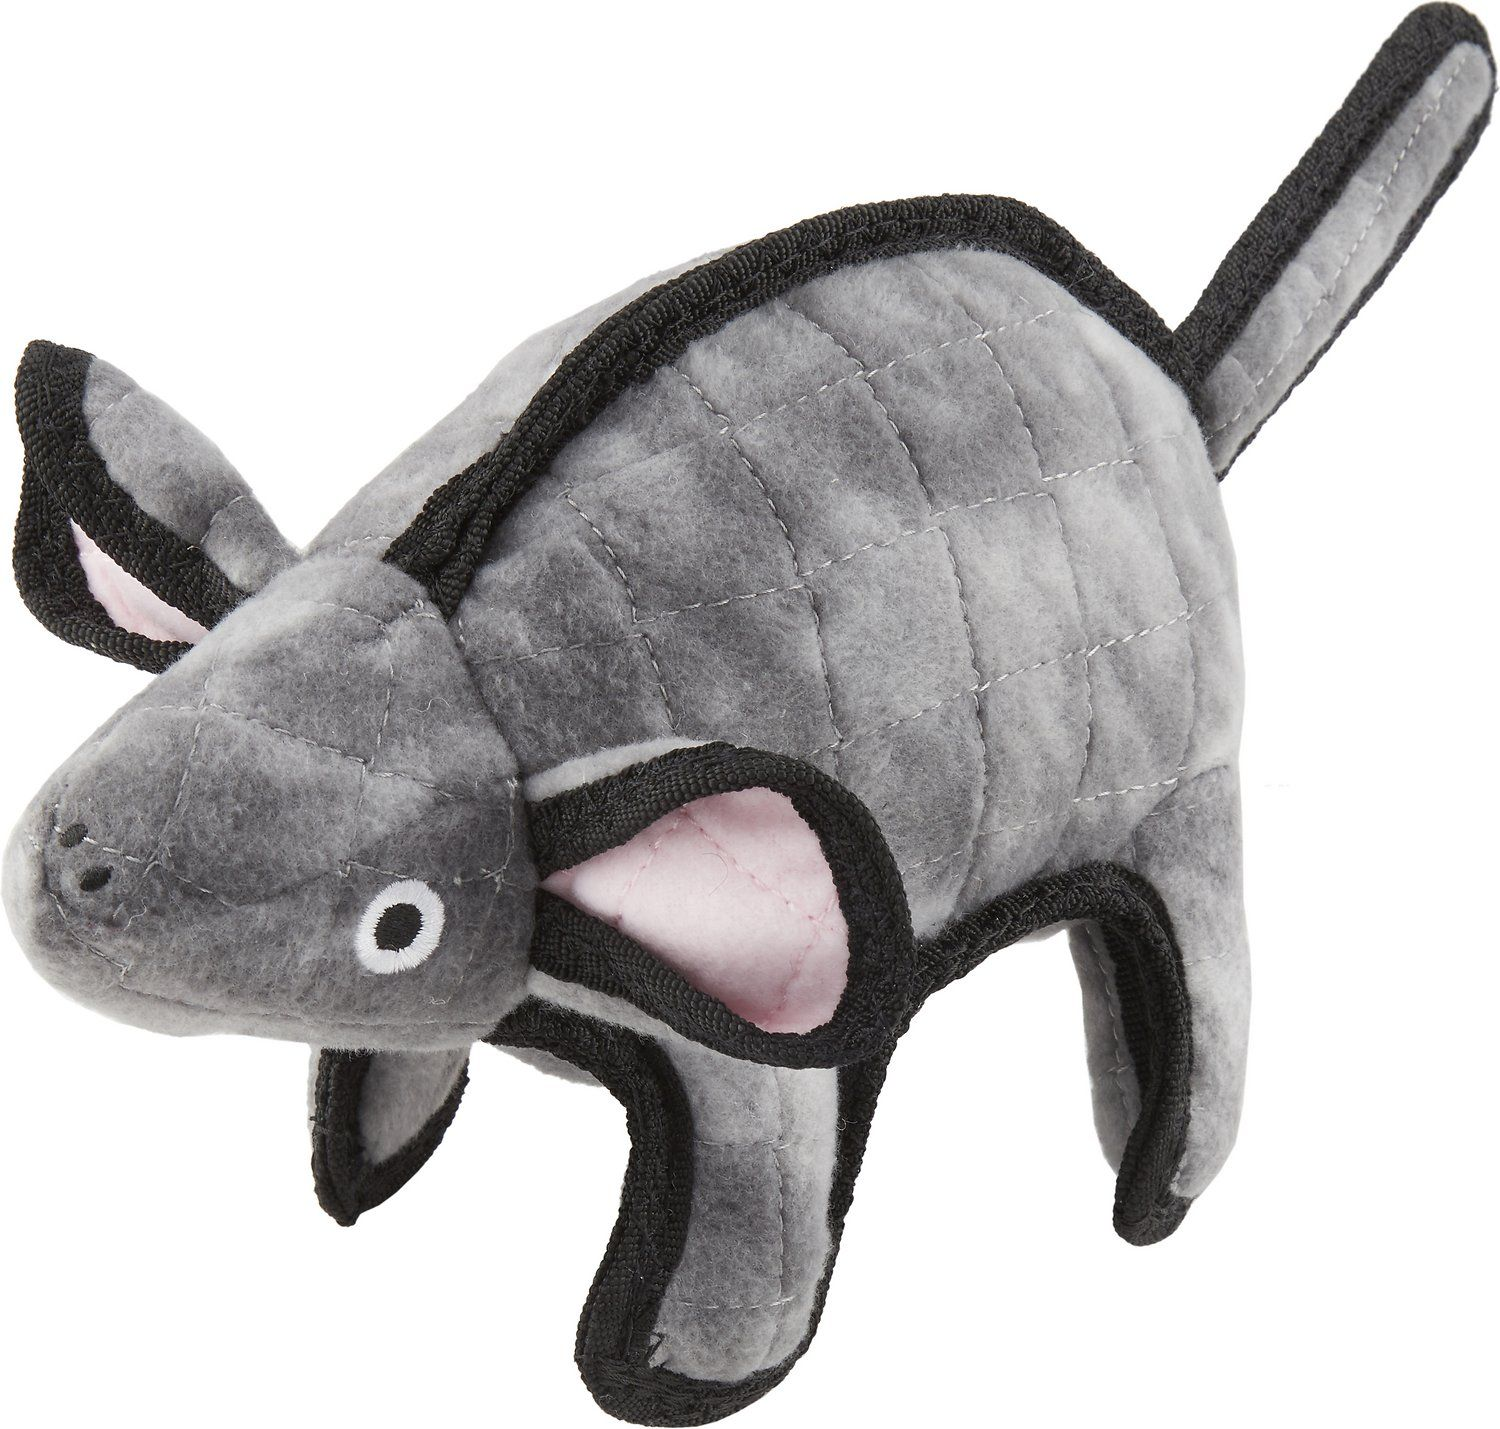 Tuffy S Gray Mouse Mo Dog Toy Chewy Com Dog Toys Dogs Tuff Toy